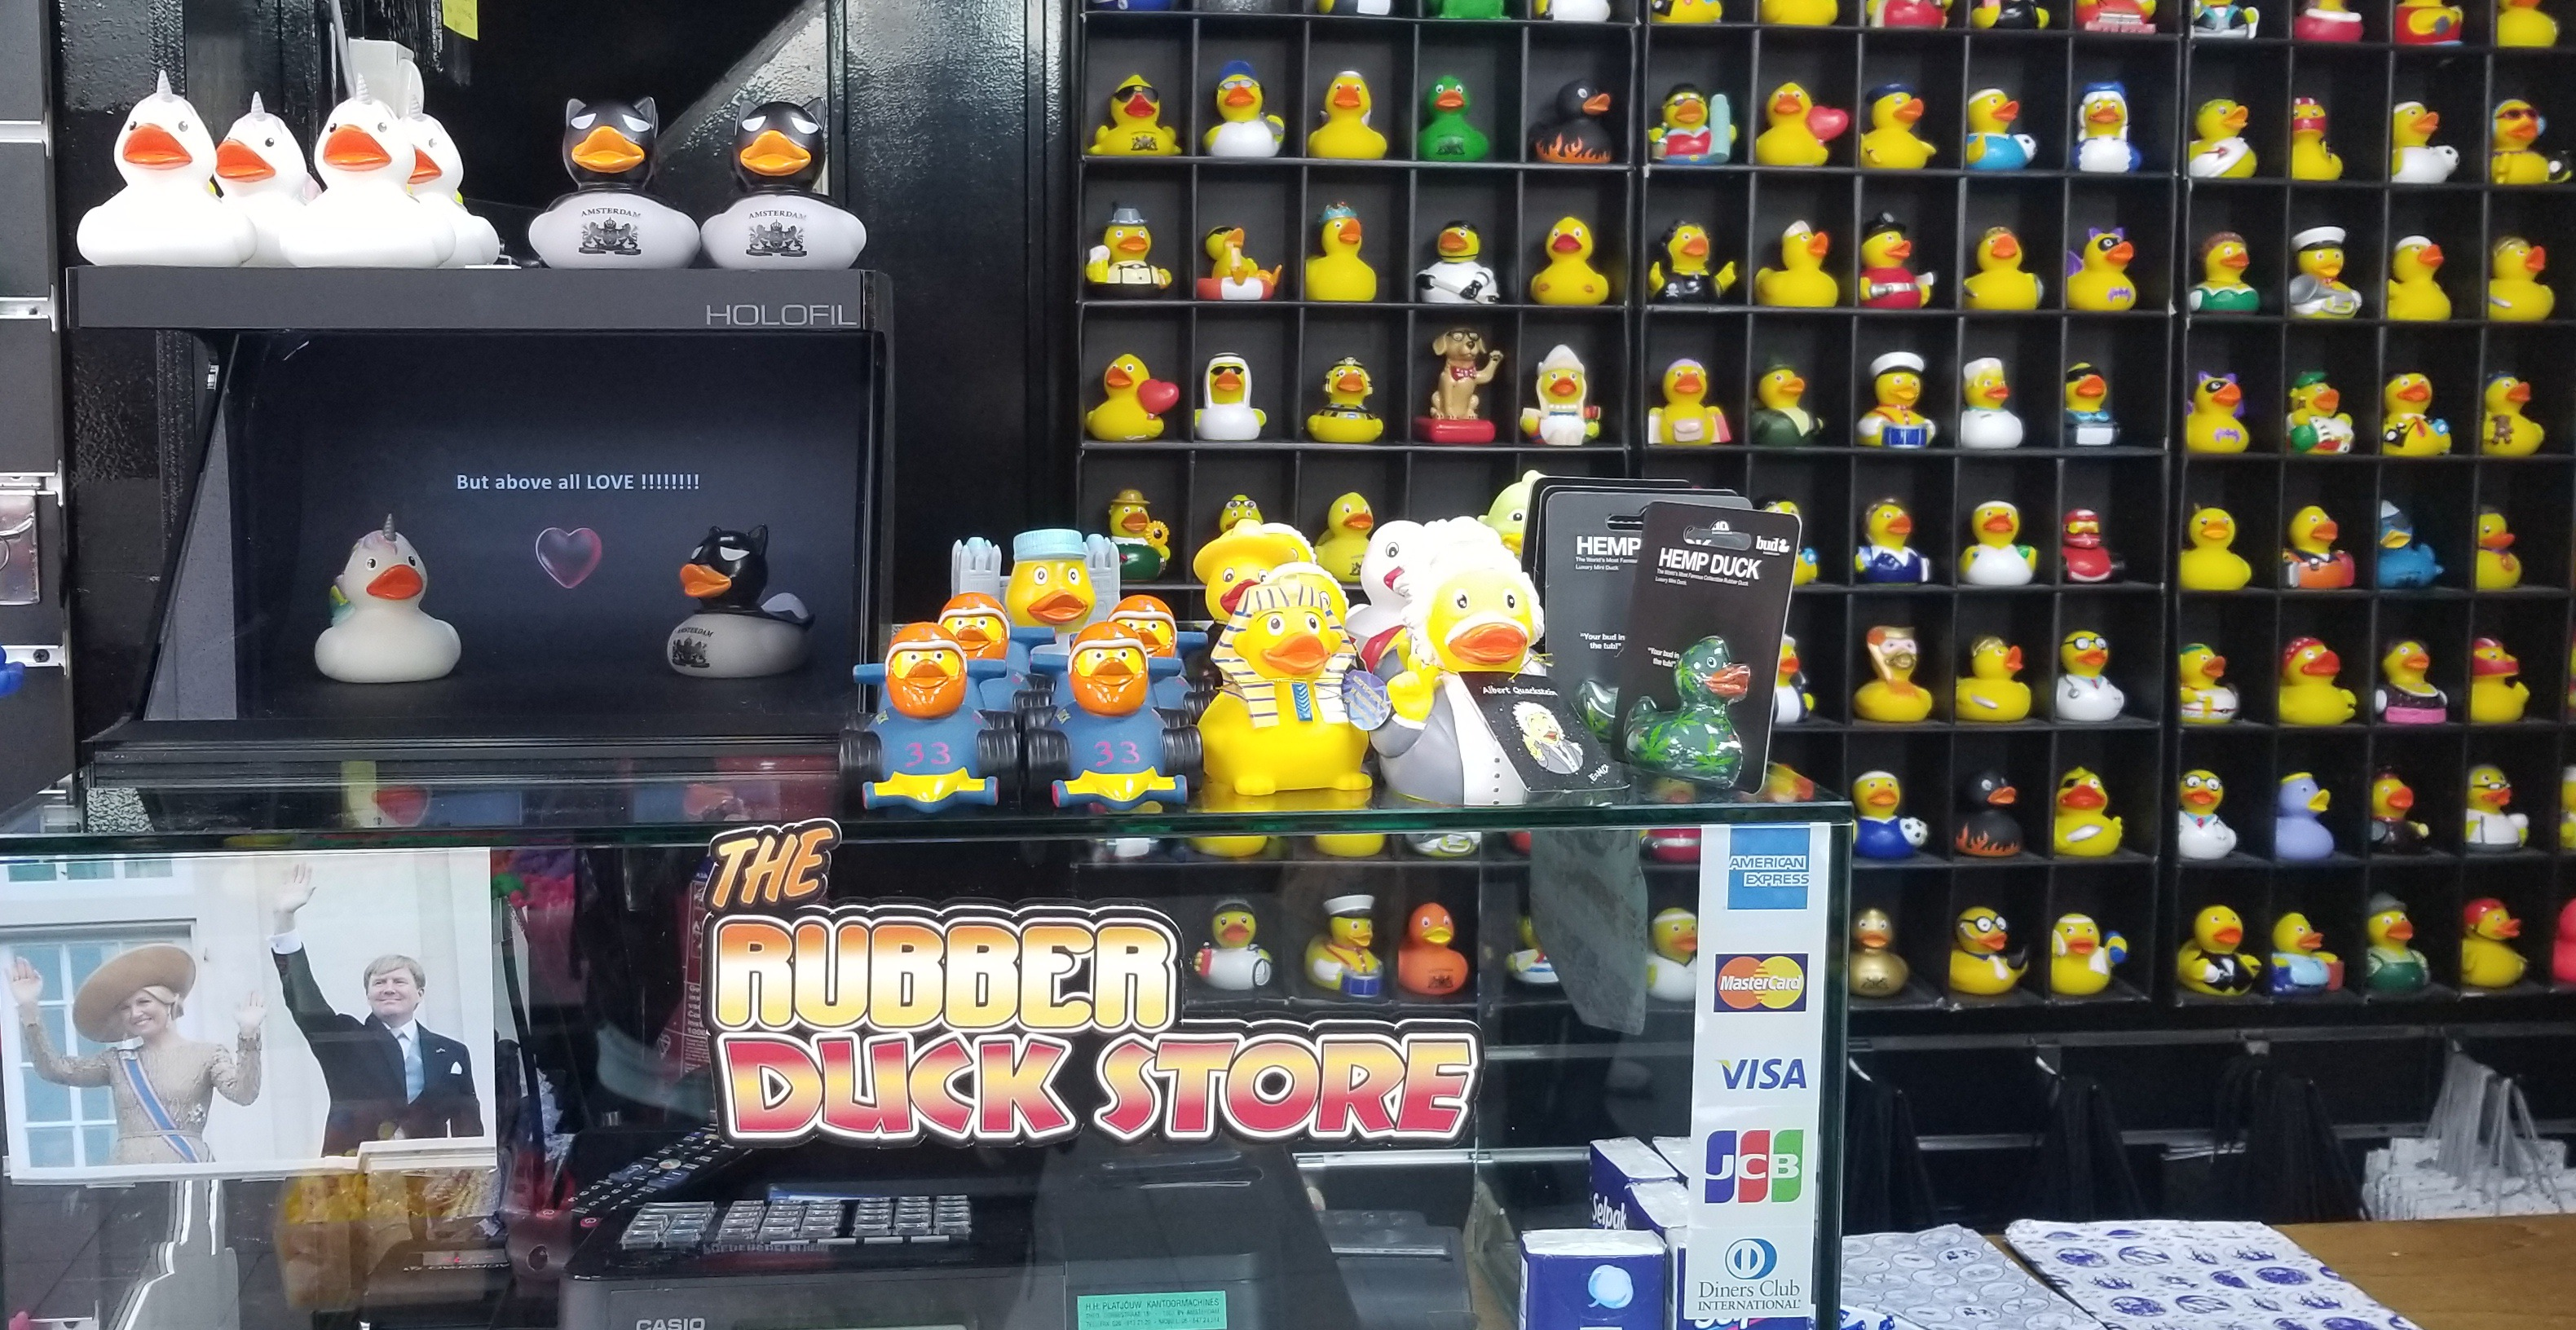 The Rubber Duck Store Amsterdam